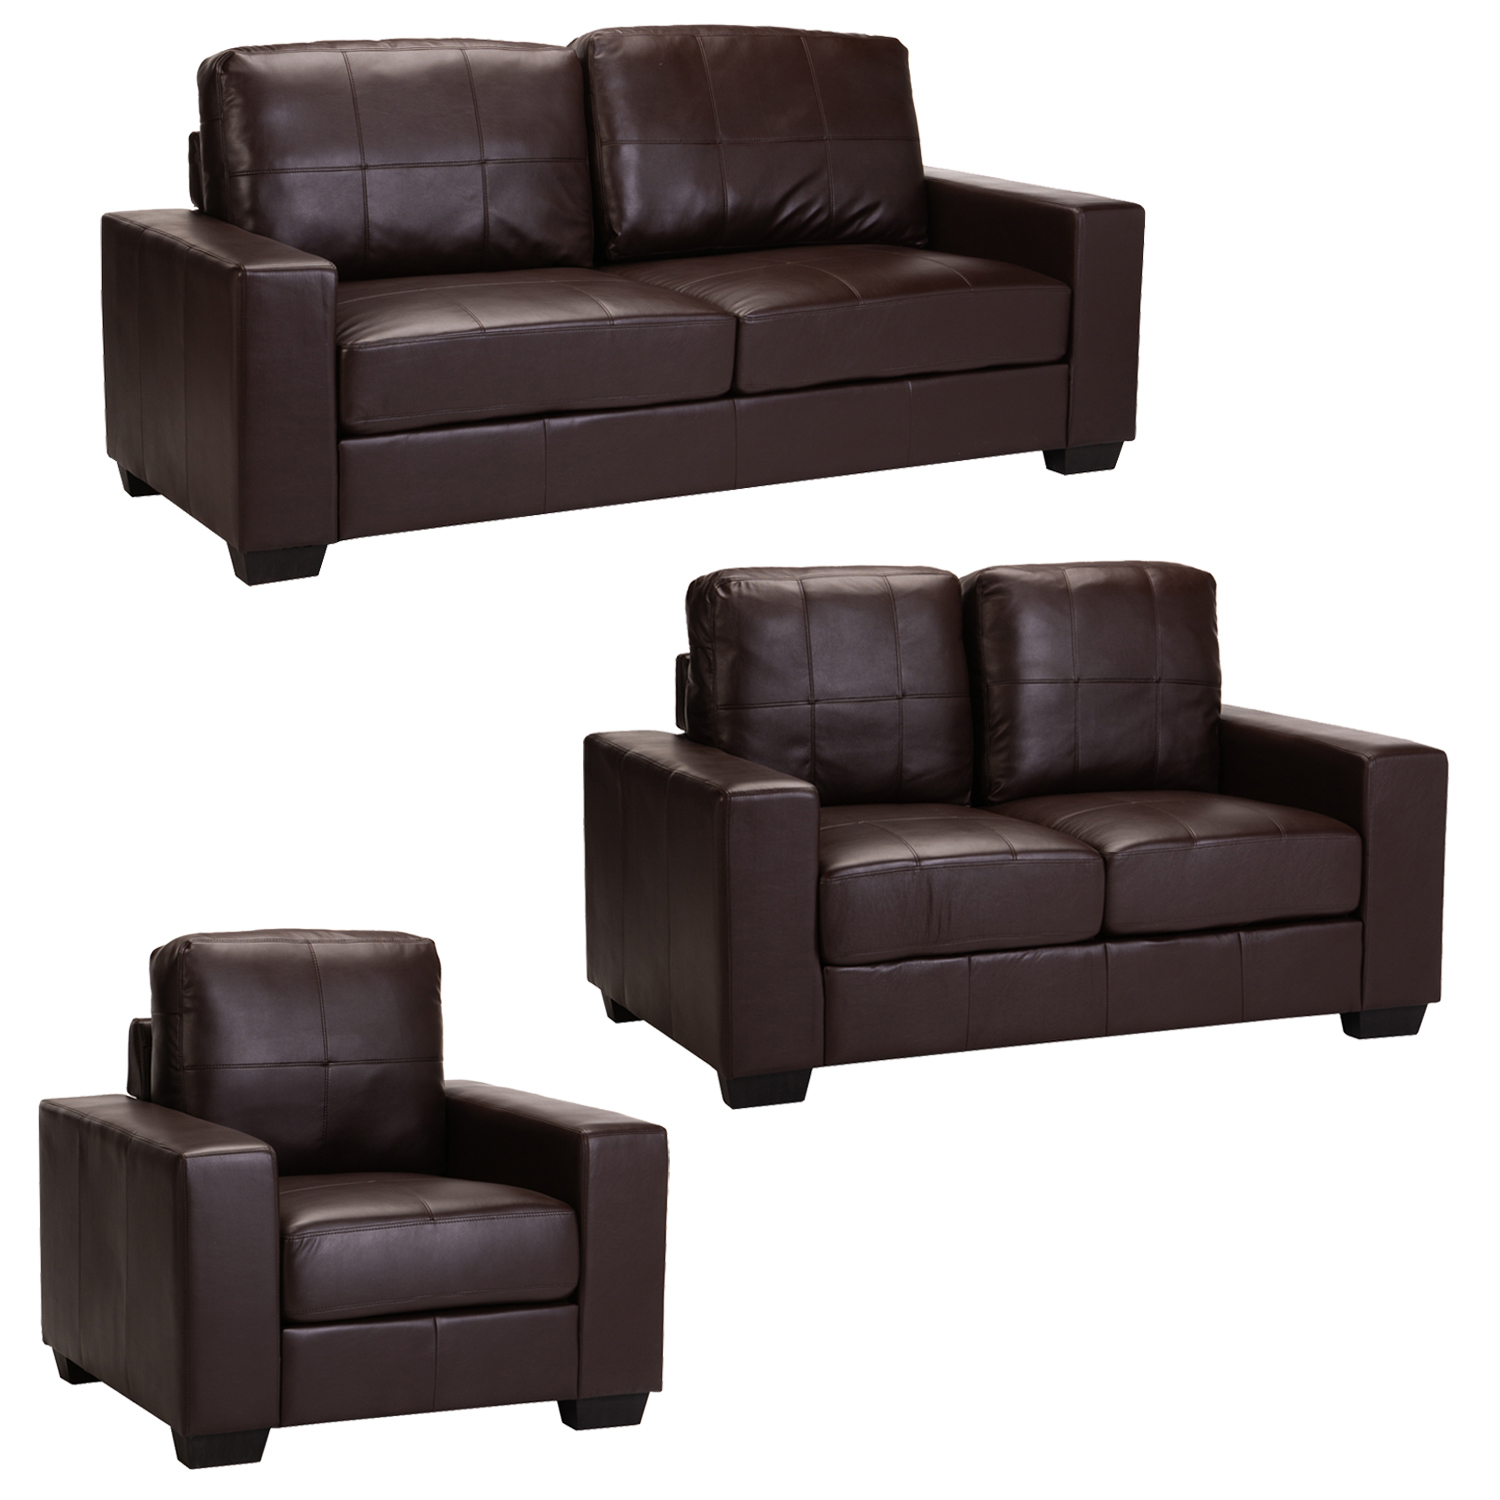 GINA 3PC SET BROWN